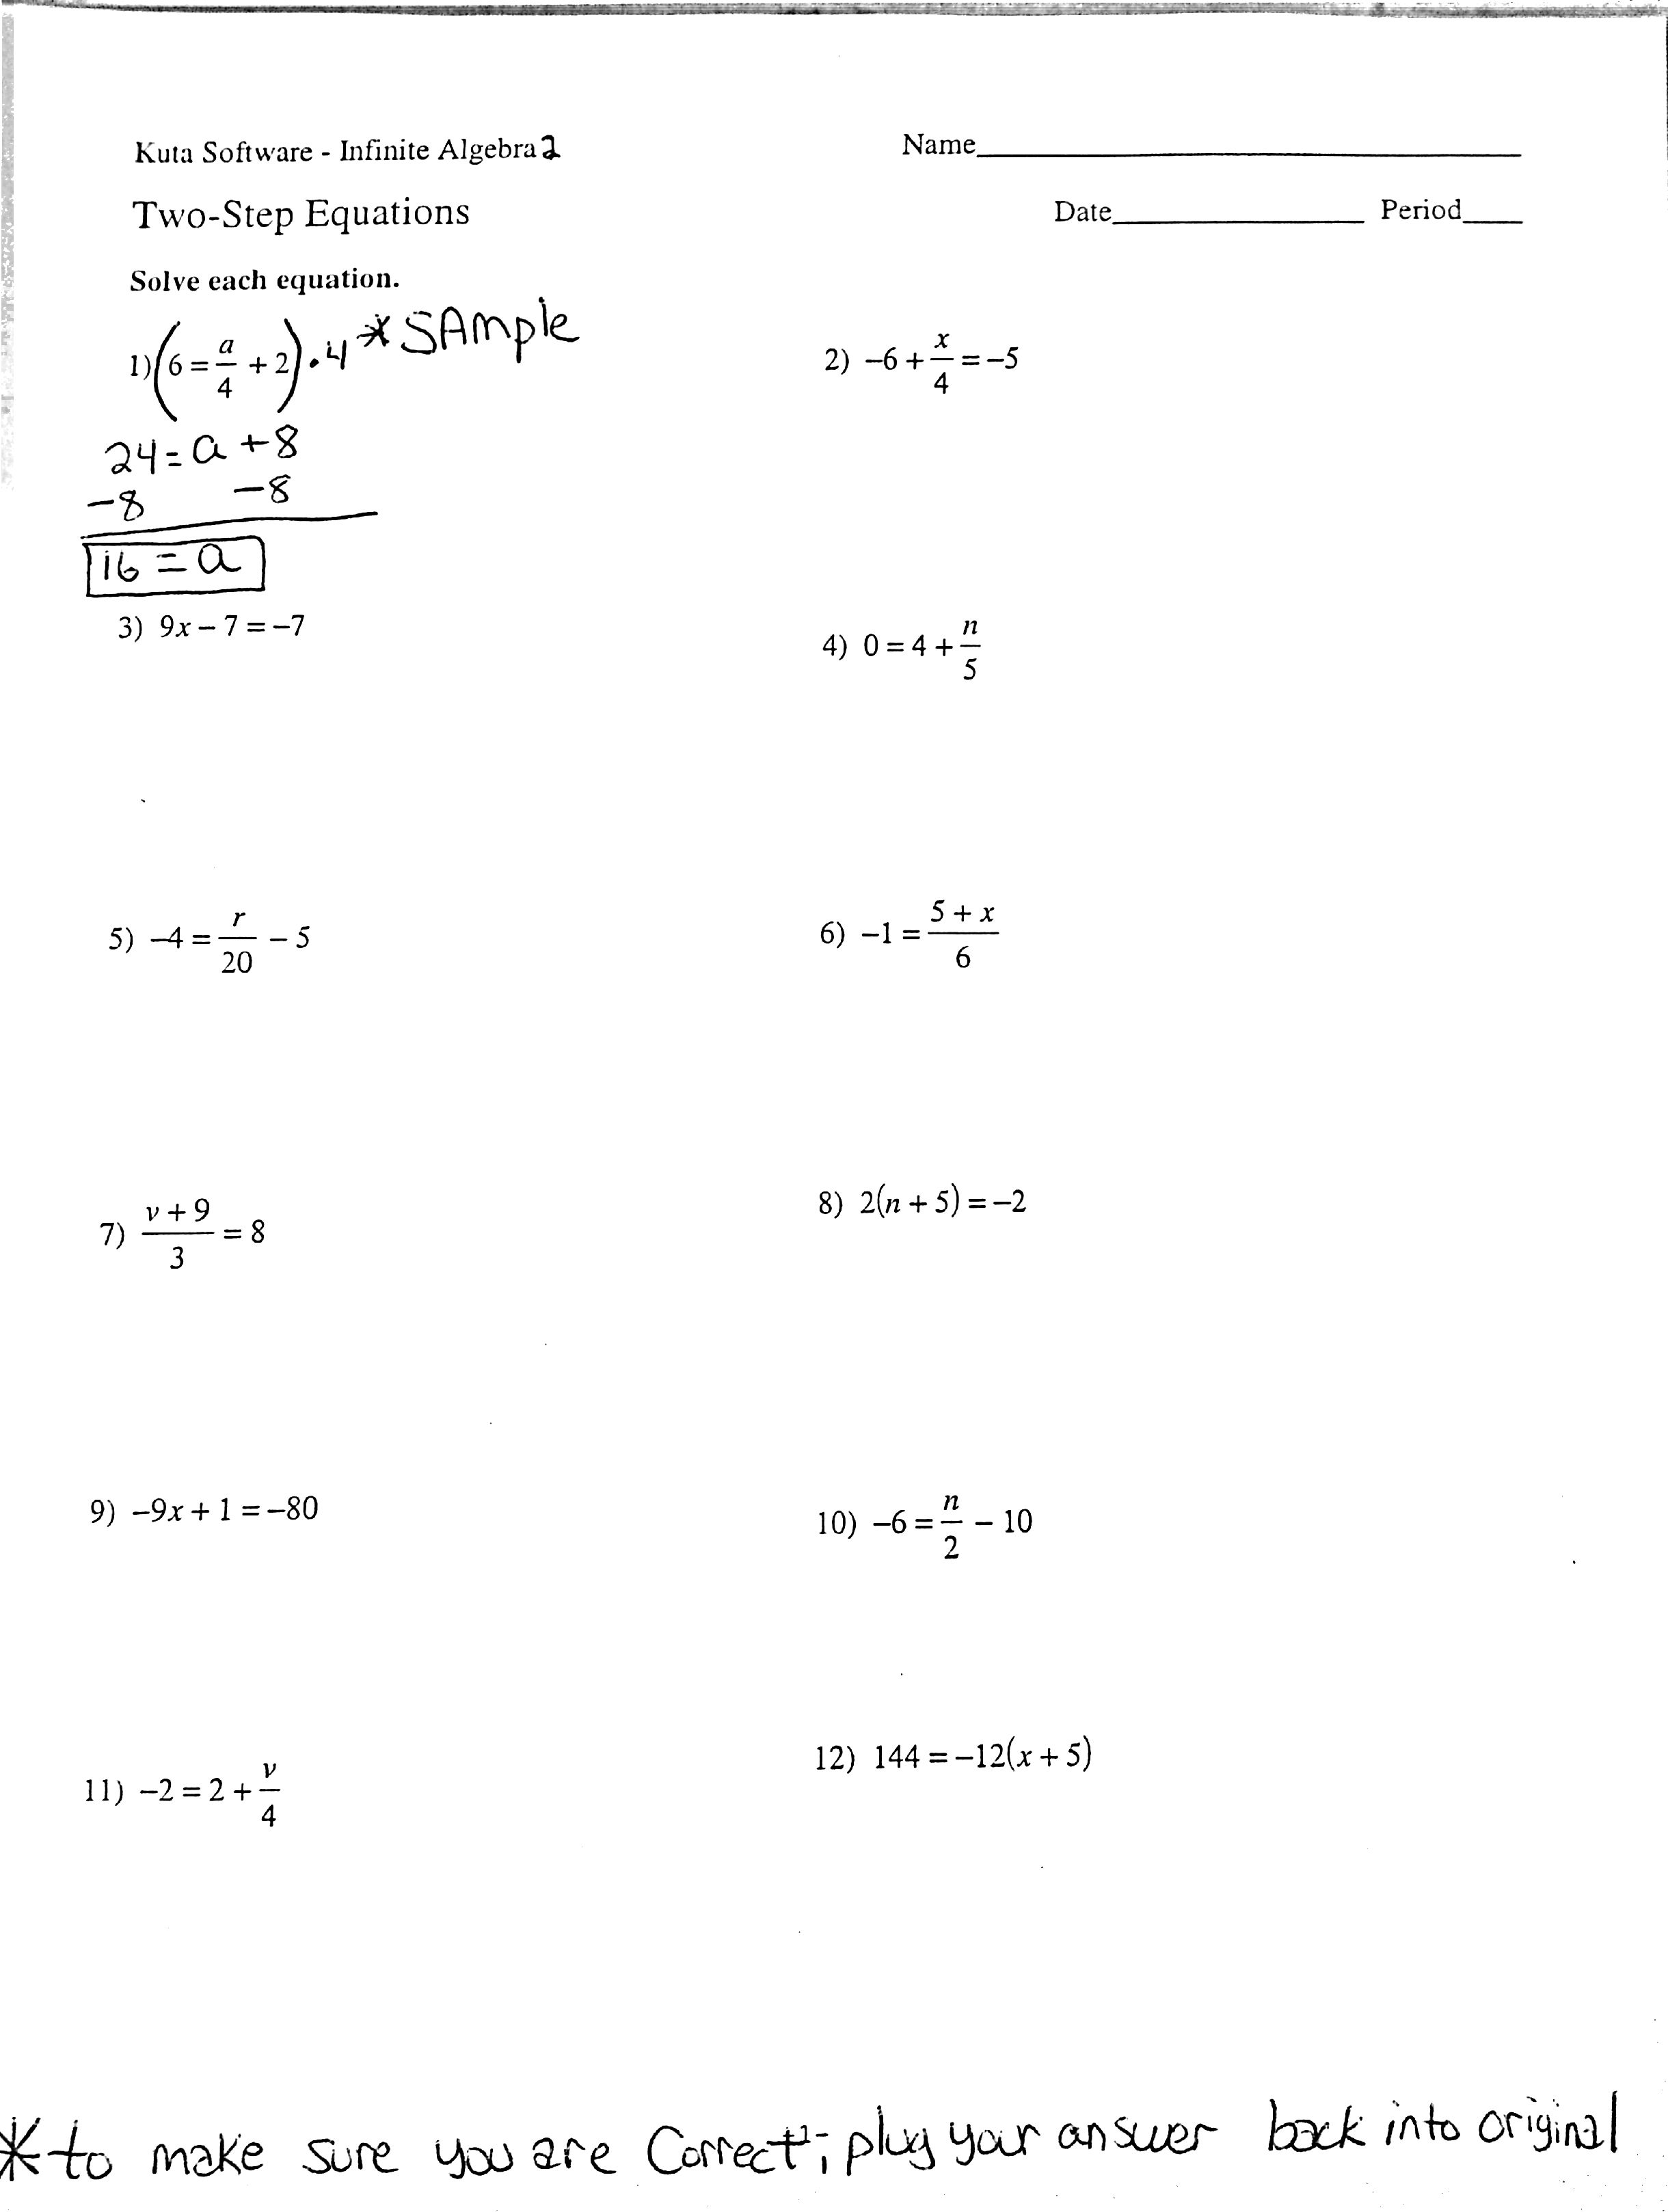 Printables Two Step Equations Worksheet Kelseylandsgaard – Solving Two Step Equations Worksheet Answers